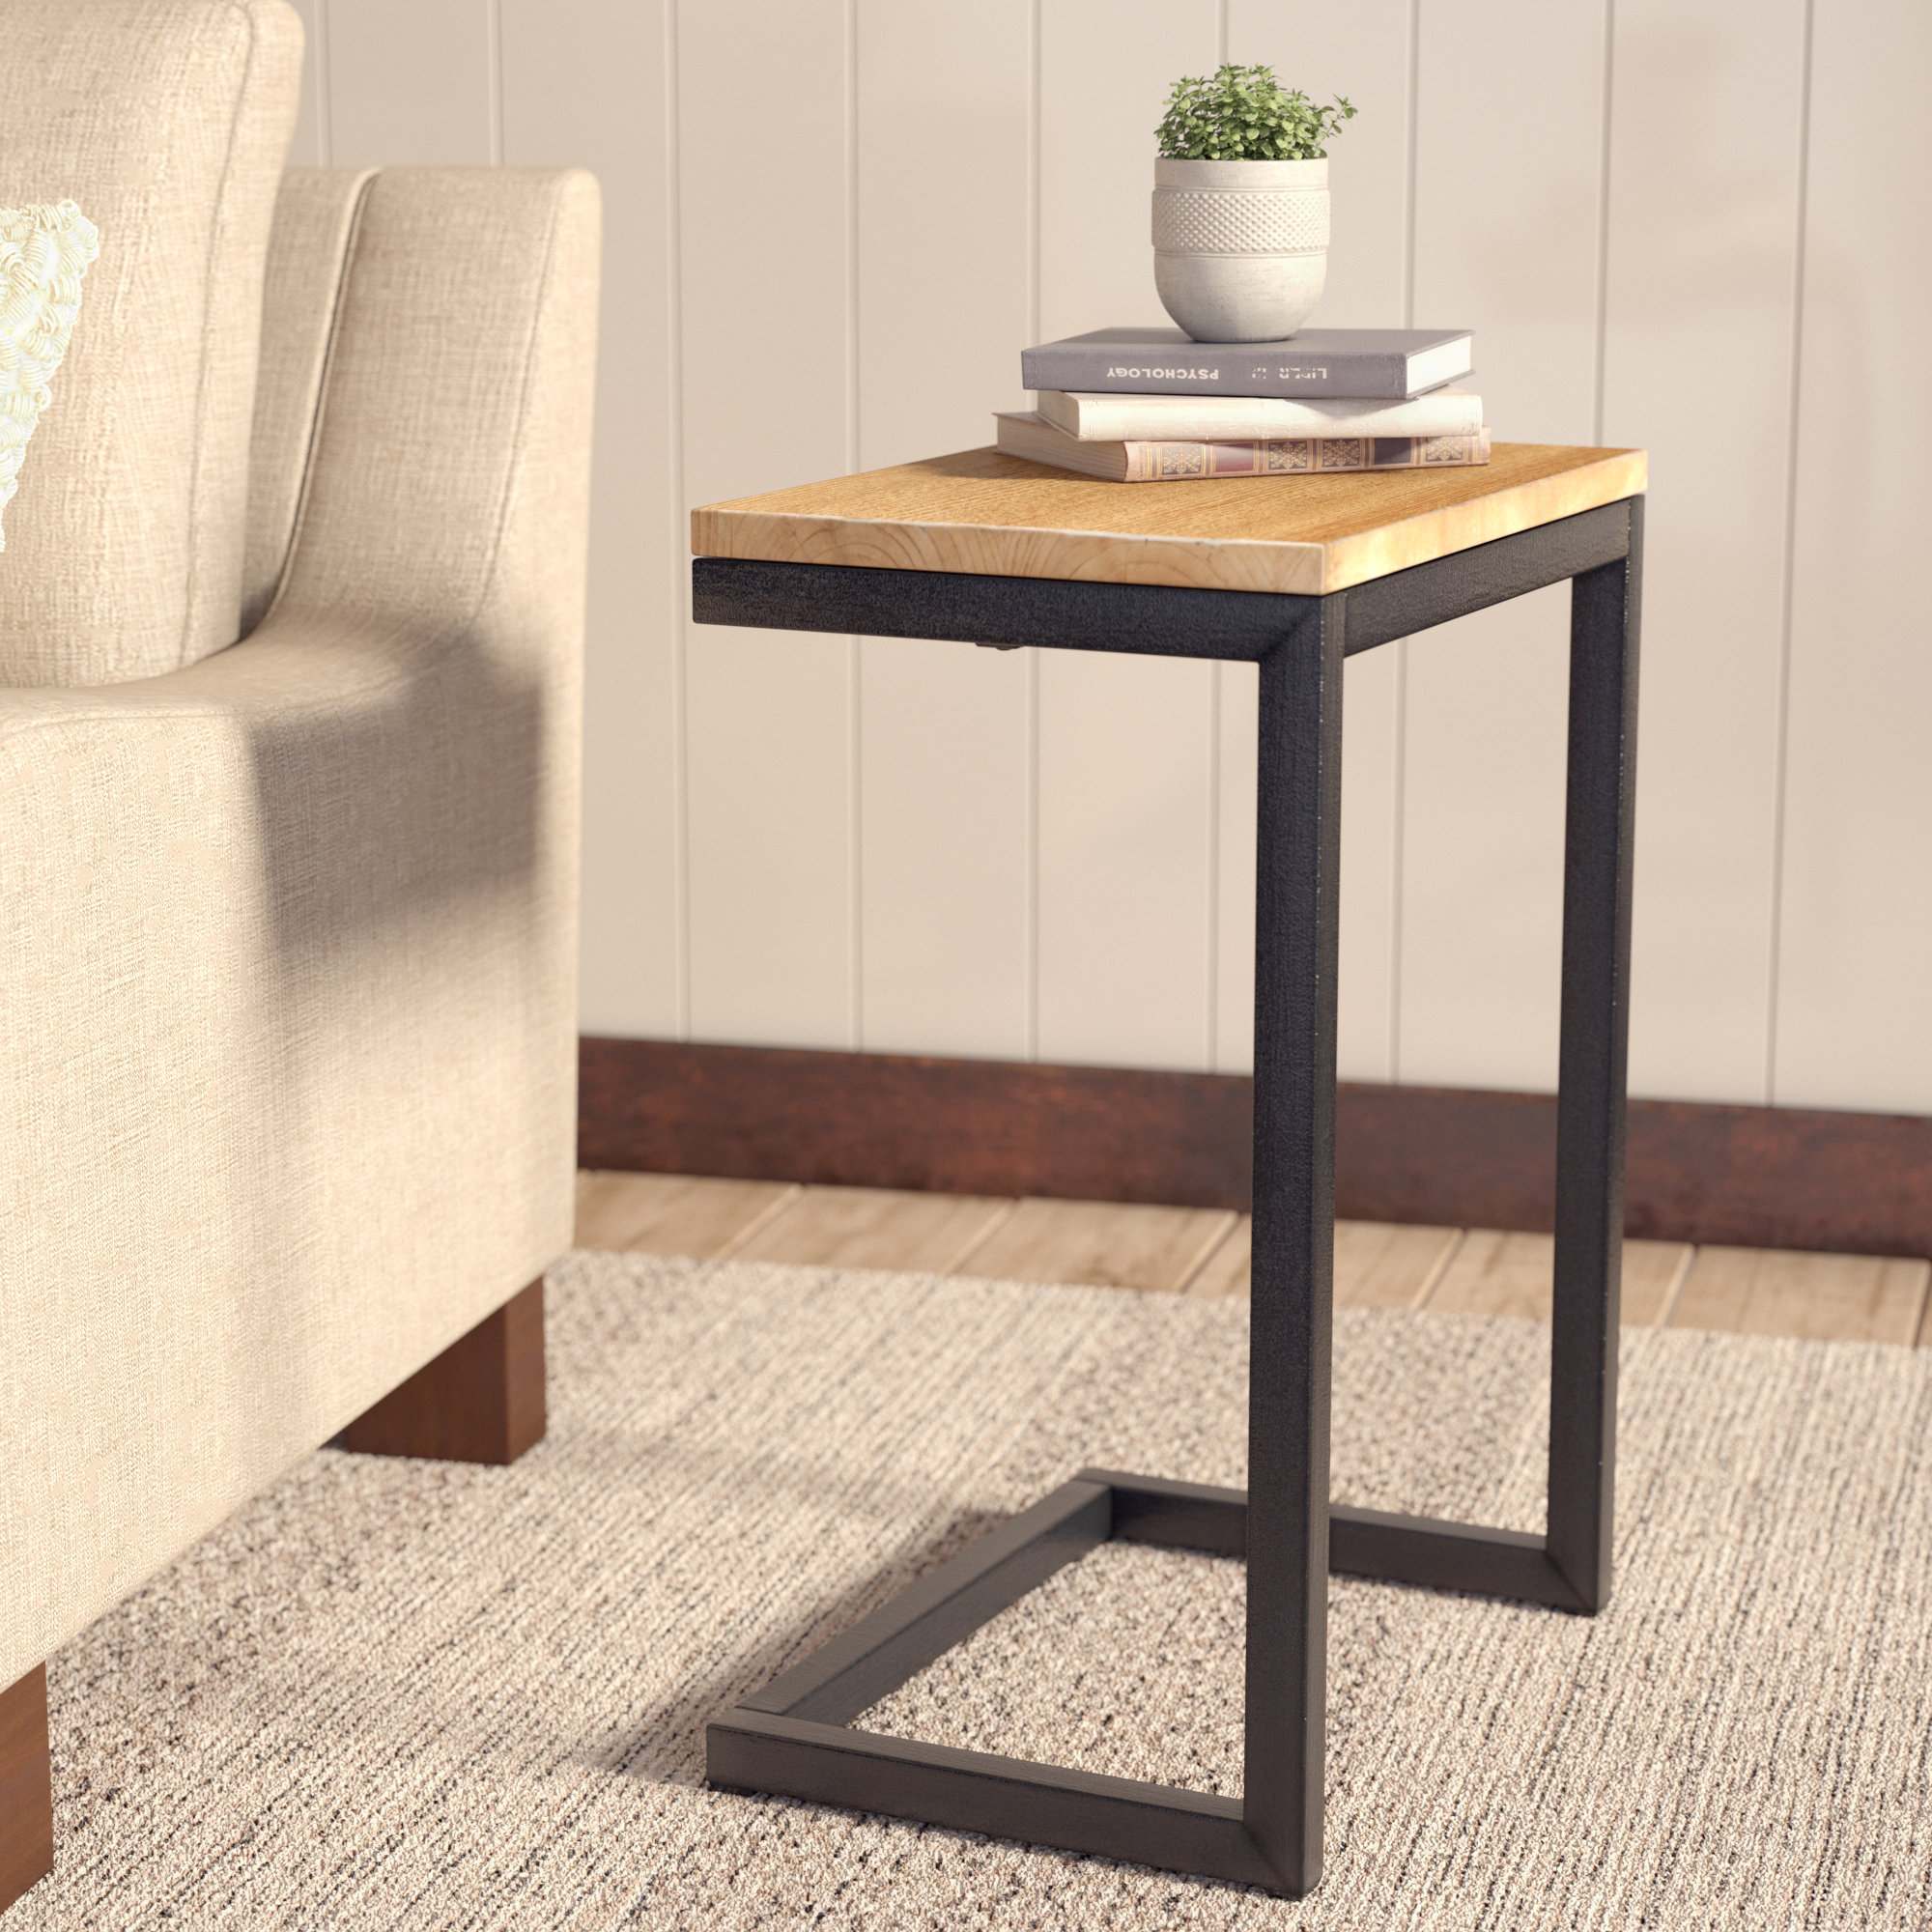 laurel foundry modern farmhouse nayara antique end table reviews small accent cocktail tables tier round side metal frame bedside sheesham wood console bistro and chairs white